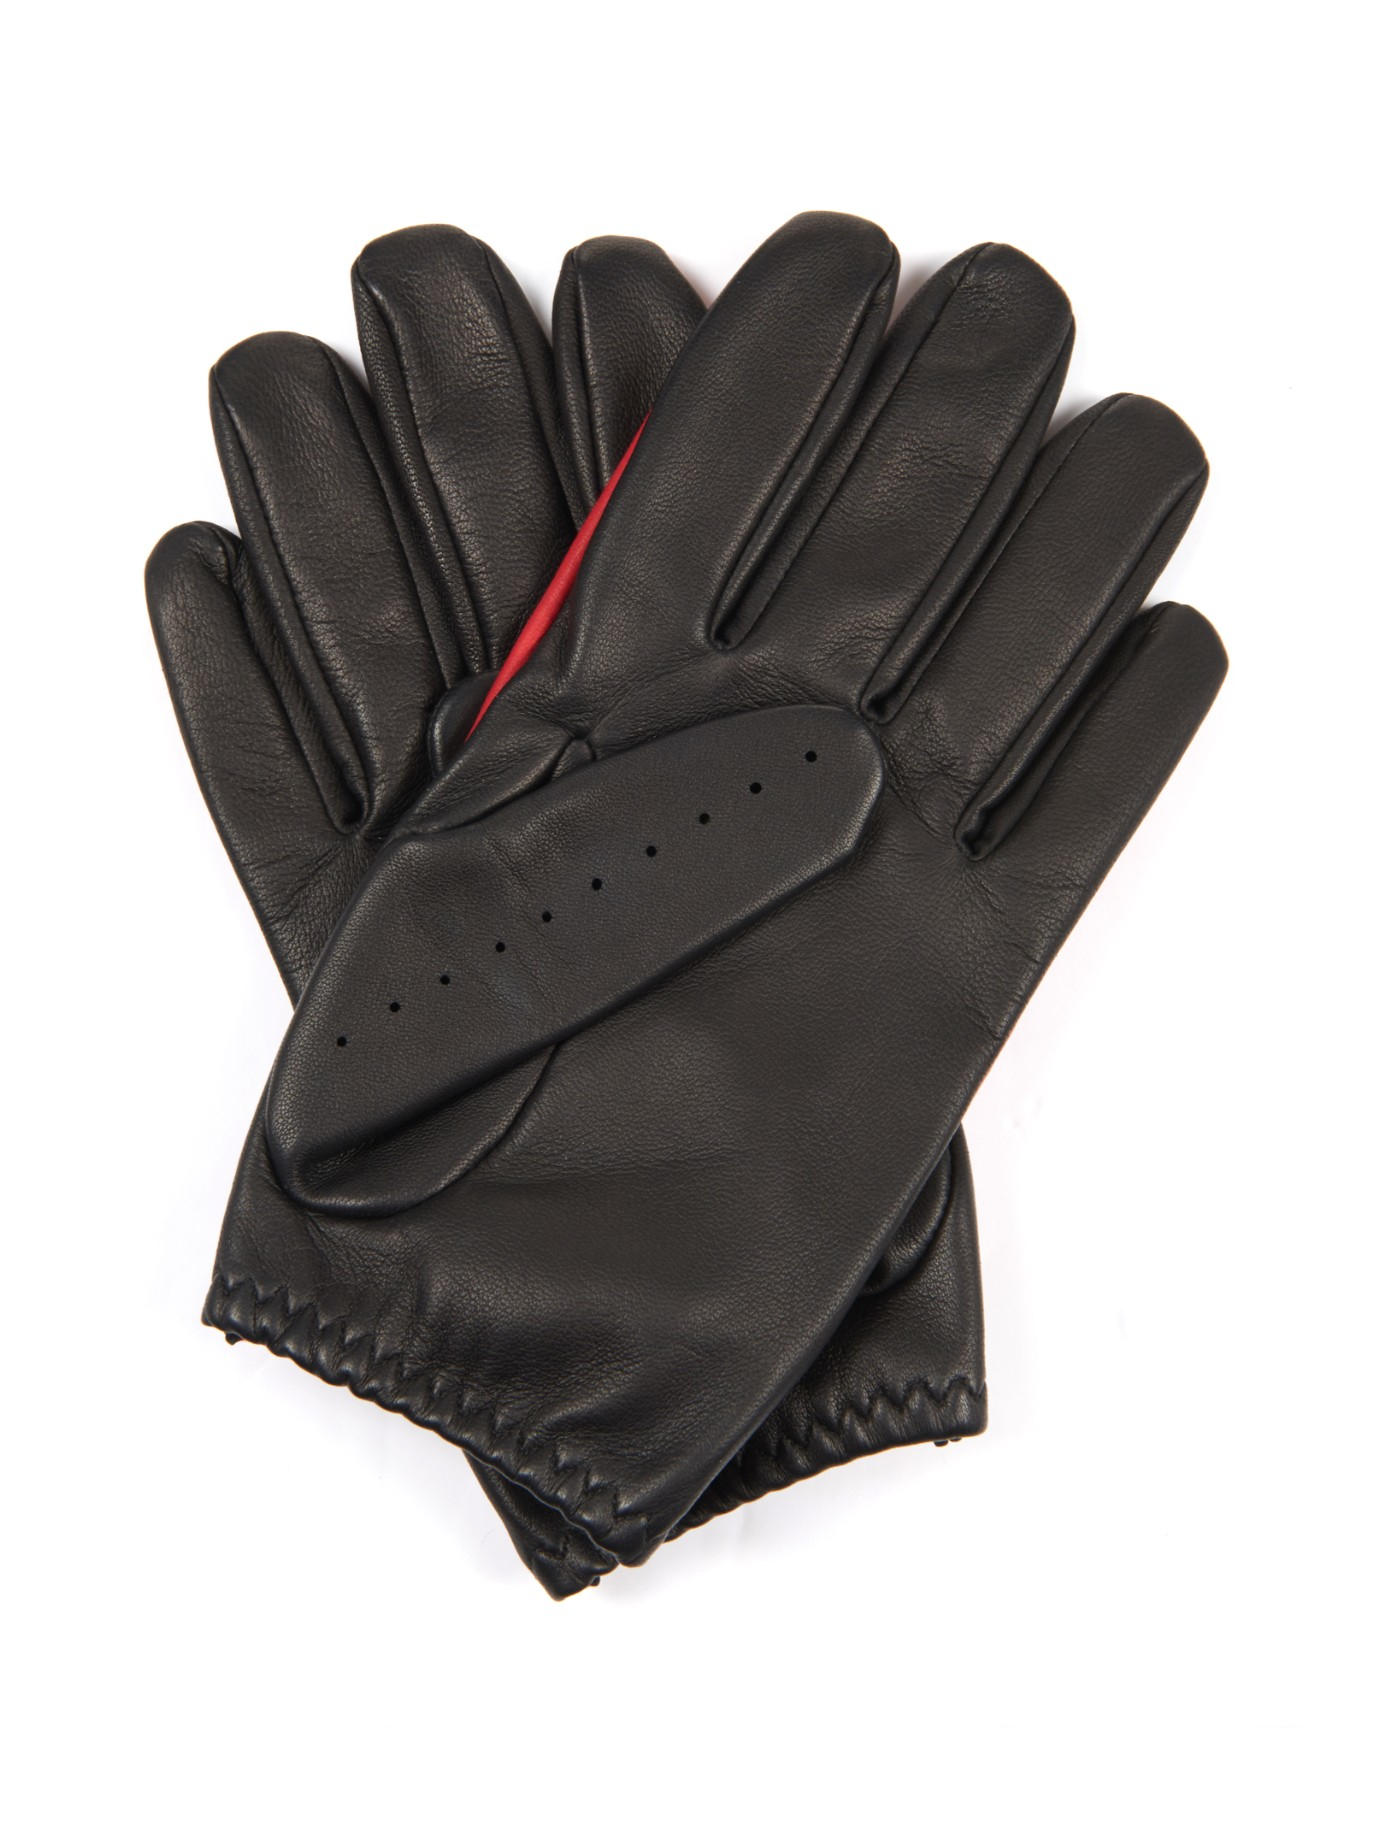 James bond leather driving gloves - Gallery